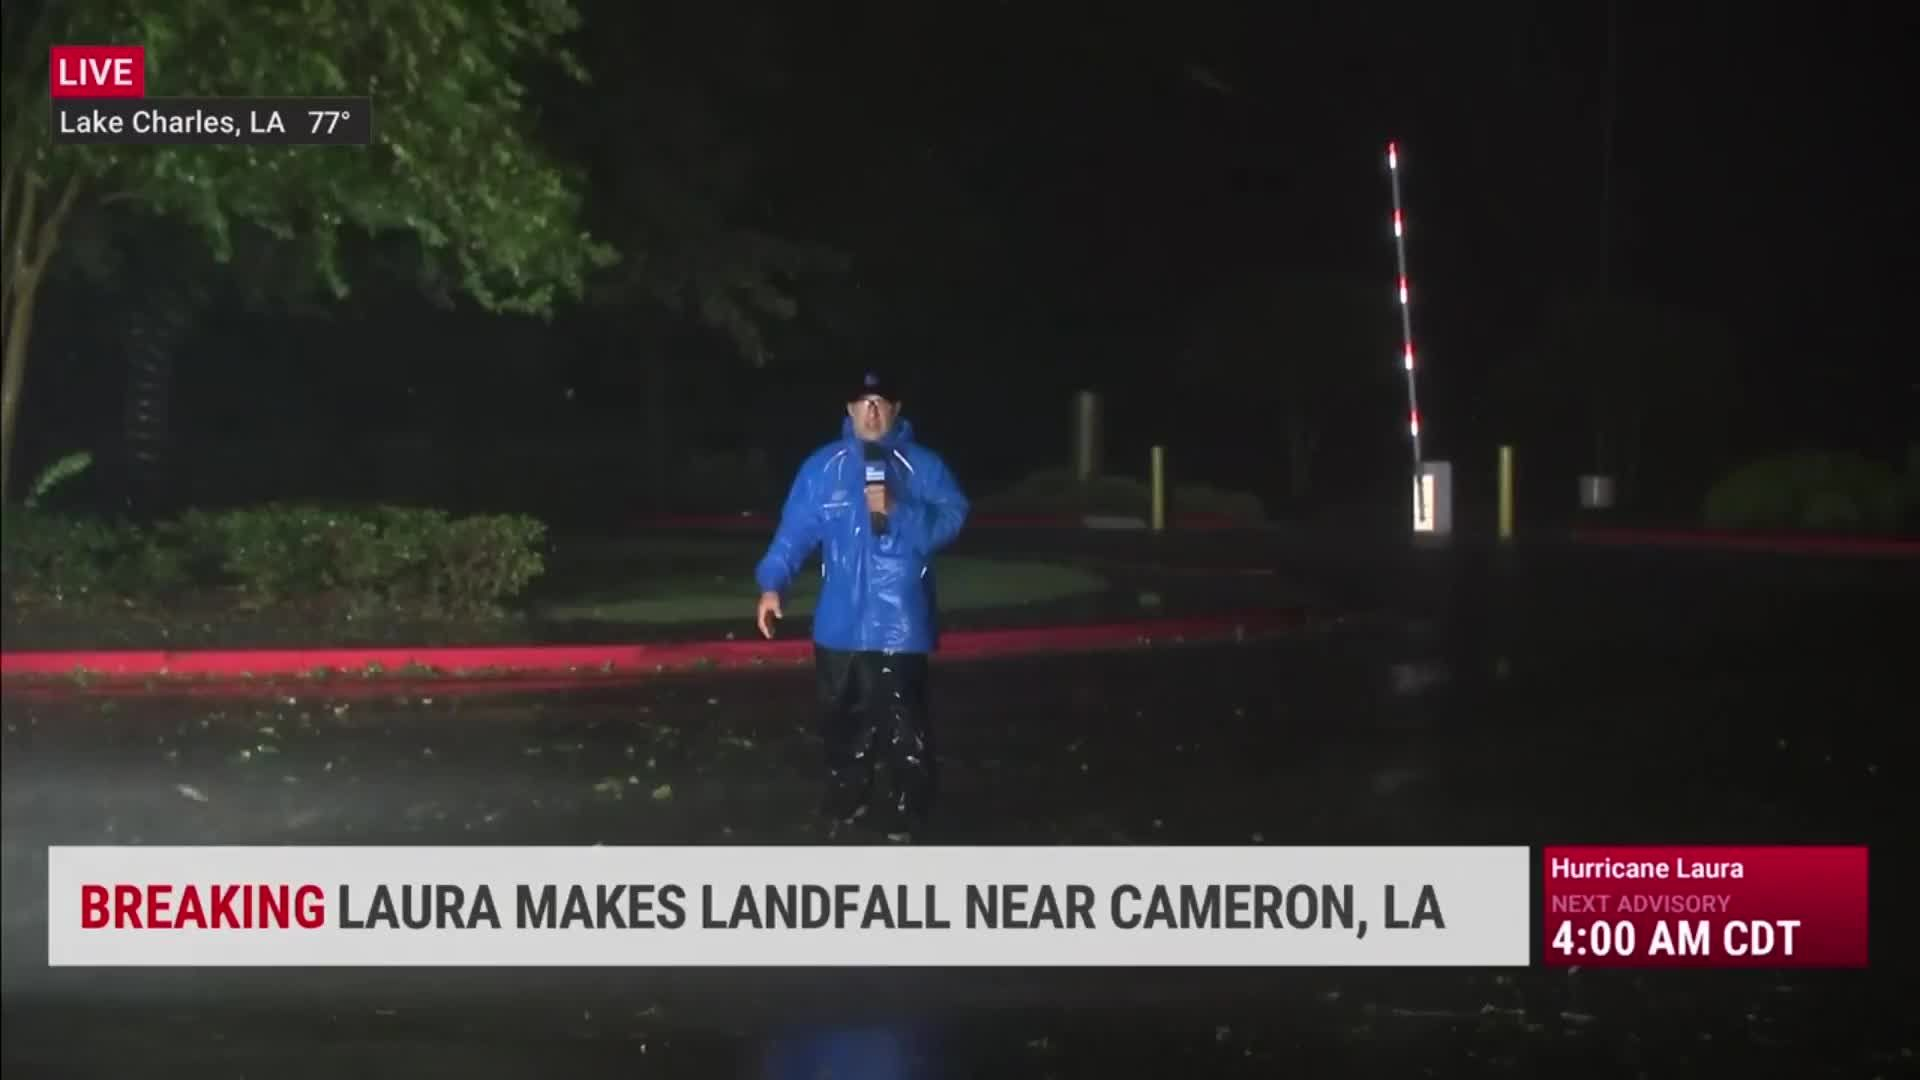 Watch Hurricane Laura Roar Ashore In Louisiana Videos From The Weather Channel Weather Com The Weather Channel Hurricane Weather News